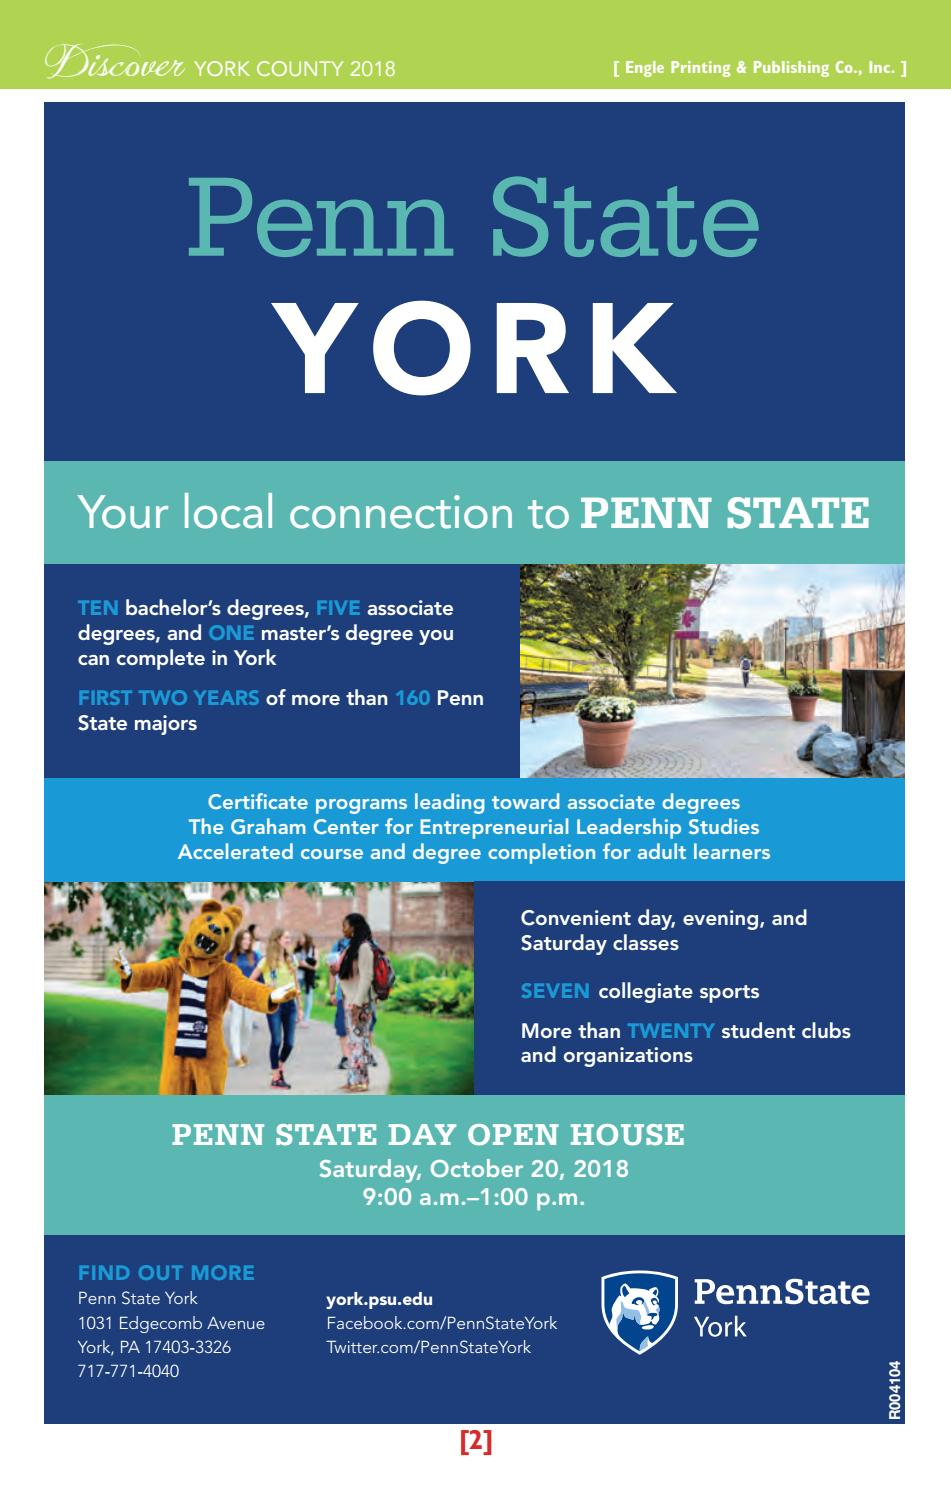 Discover York County 2018 By Engle Printing Publishing Co Inc